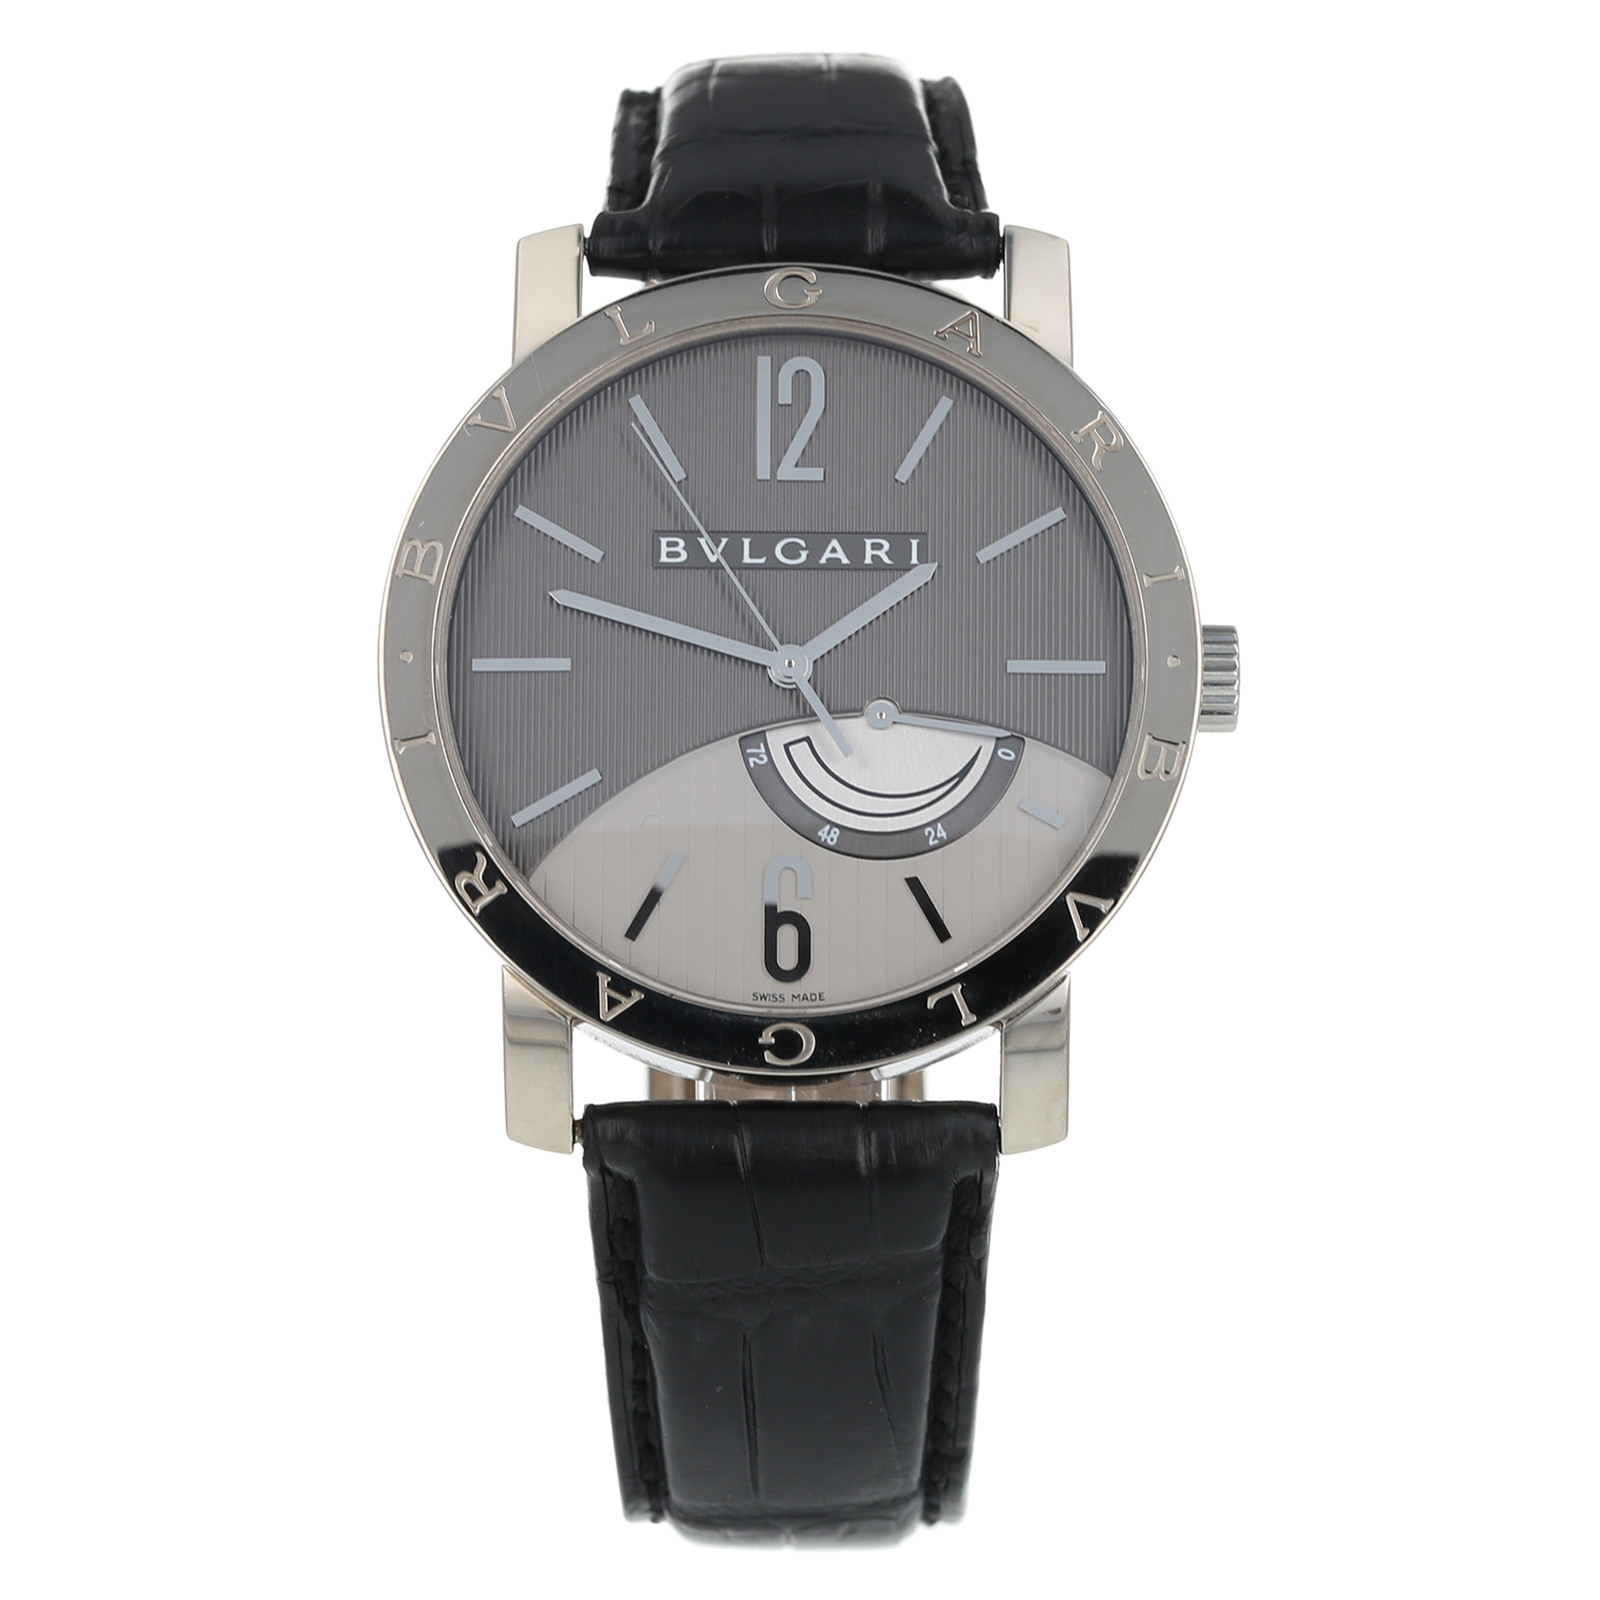 Pre-Owned Bvlgari Unisex Watch BB W 41 GL